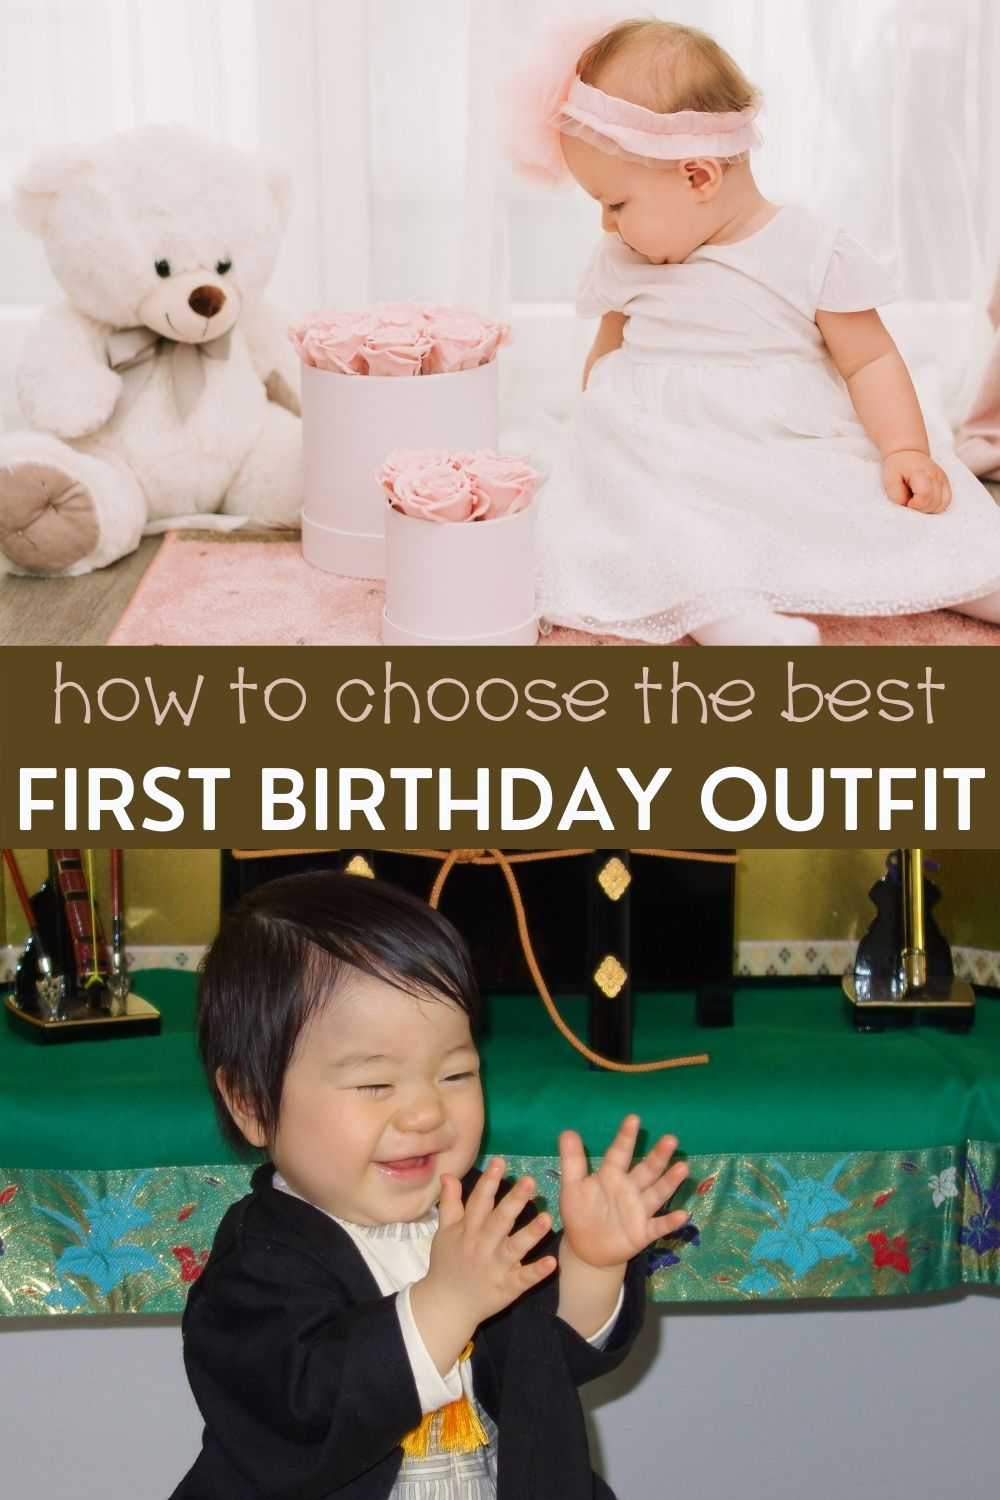 How to choose the best first birthday outfit